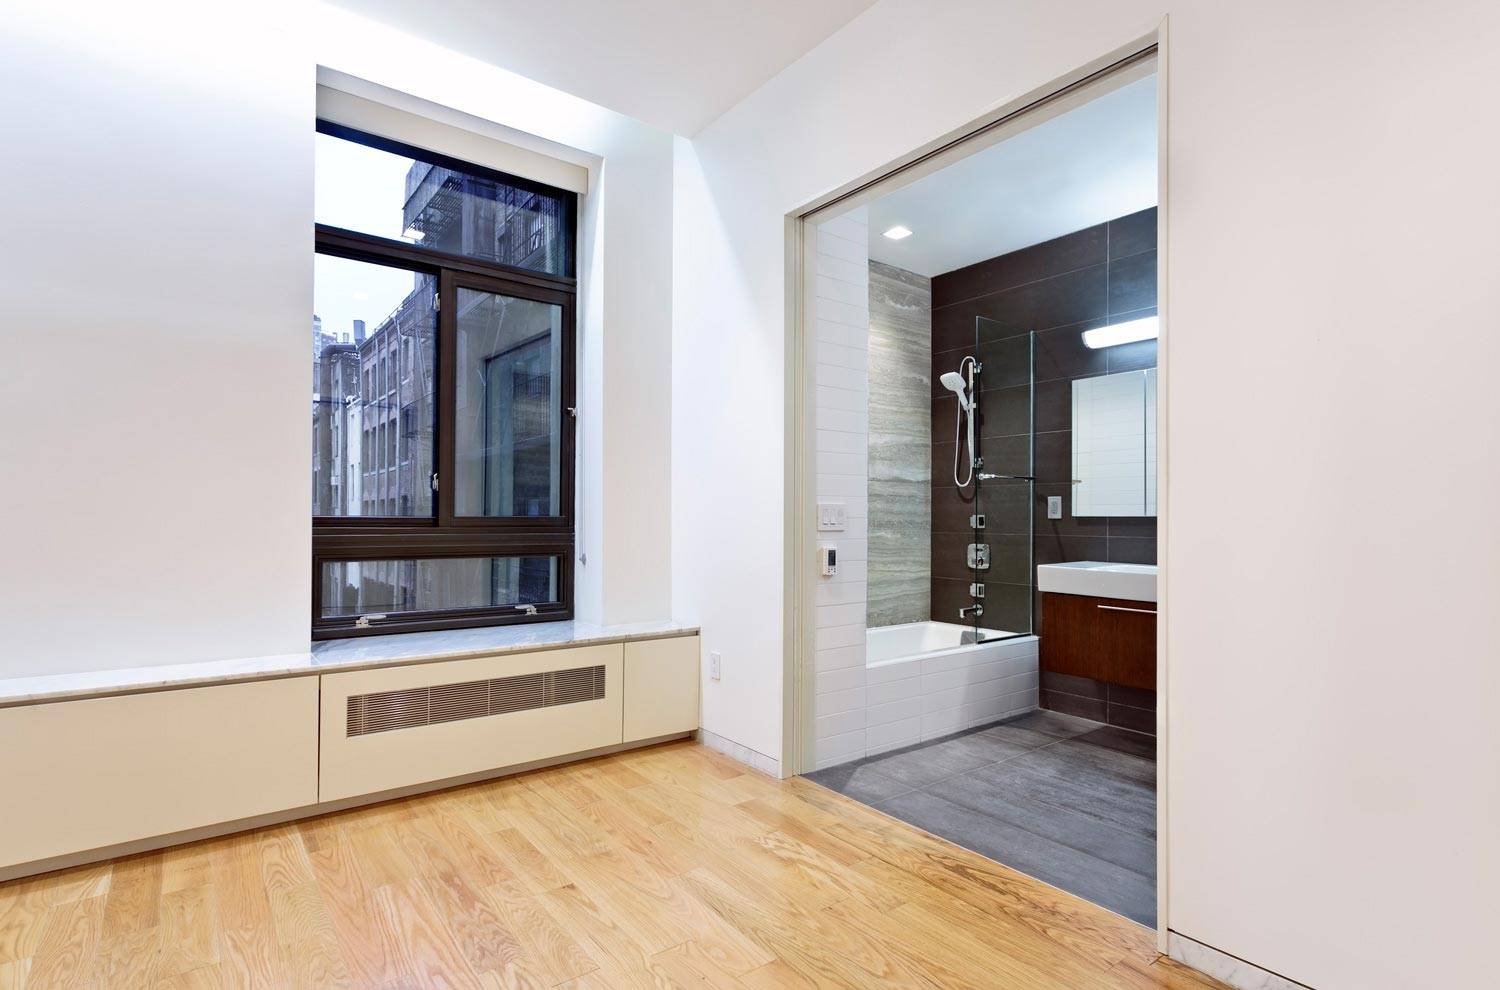 Strategic new window opening offer views of both the street and authentic west facing alley.